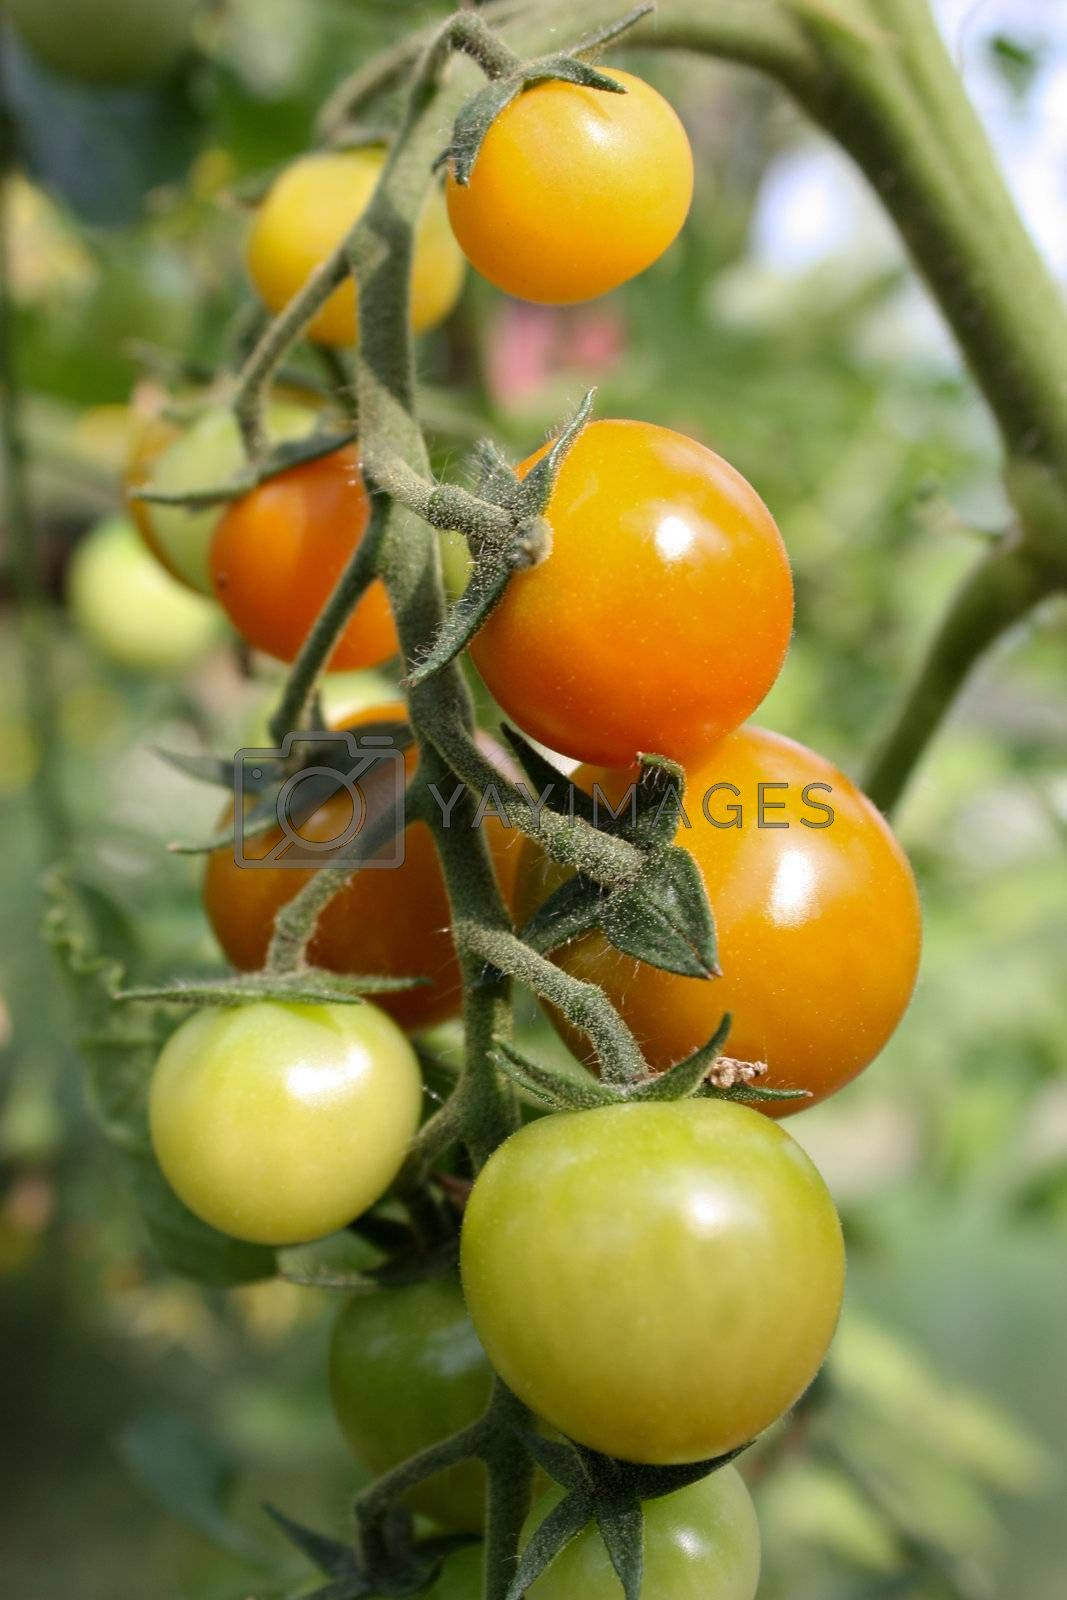 Royalty free image of tomatoes by Lyudmila